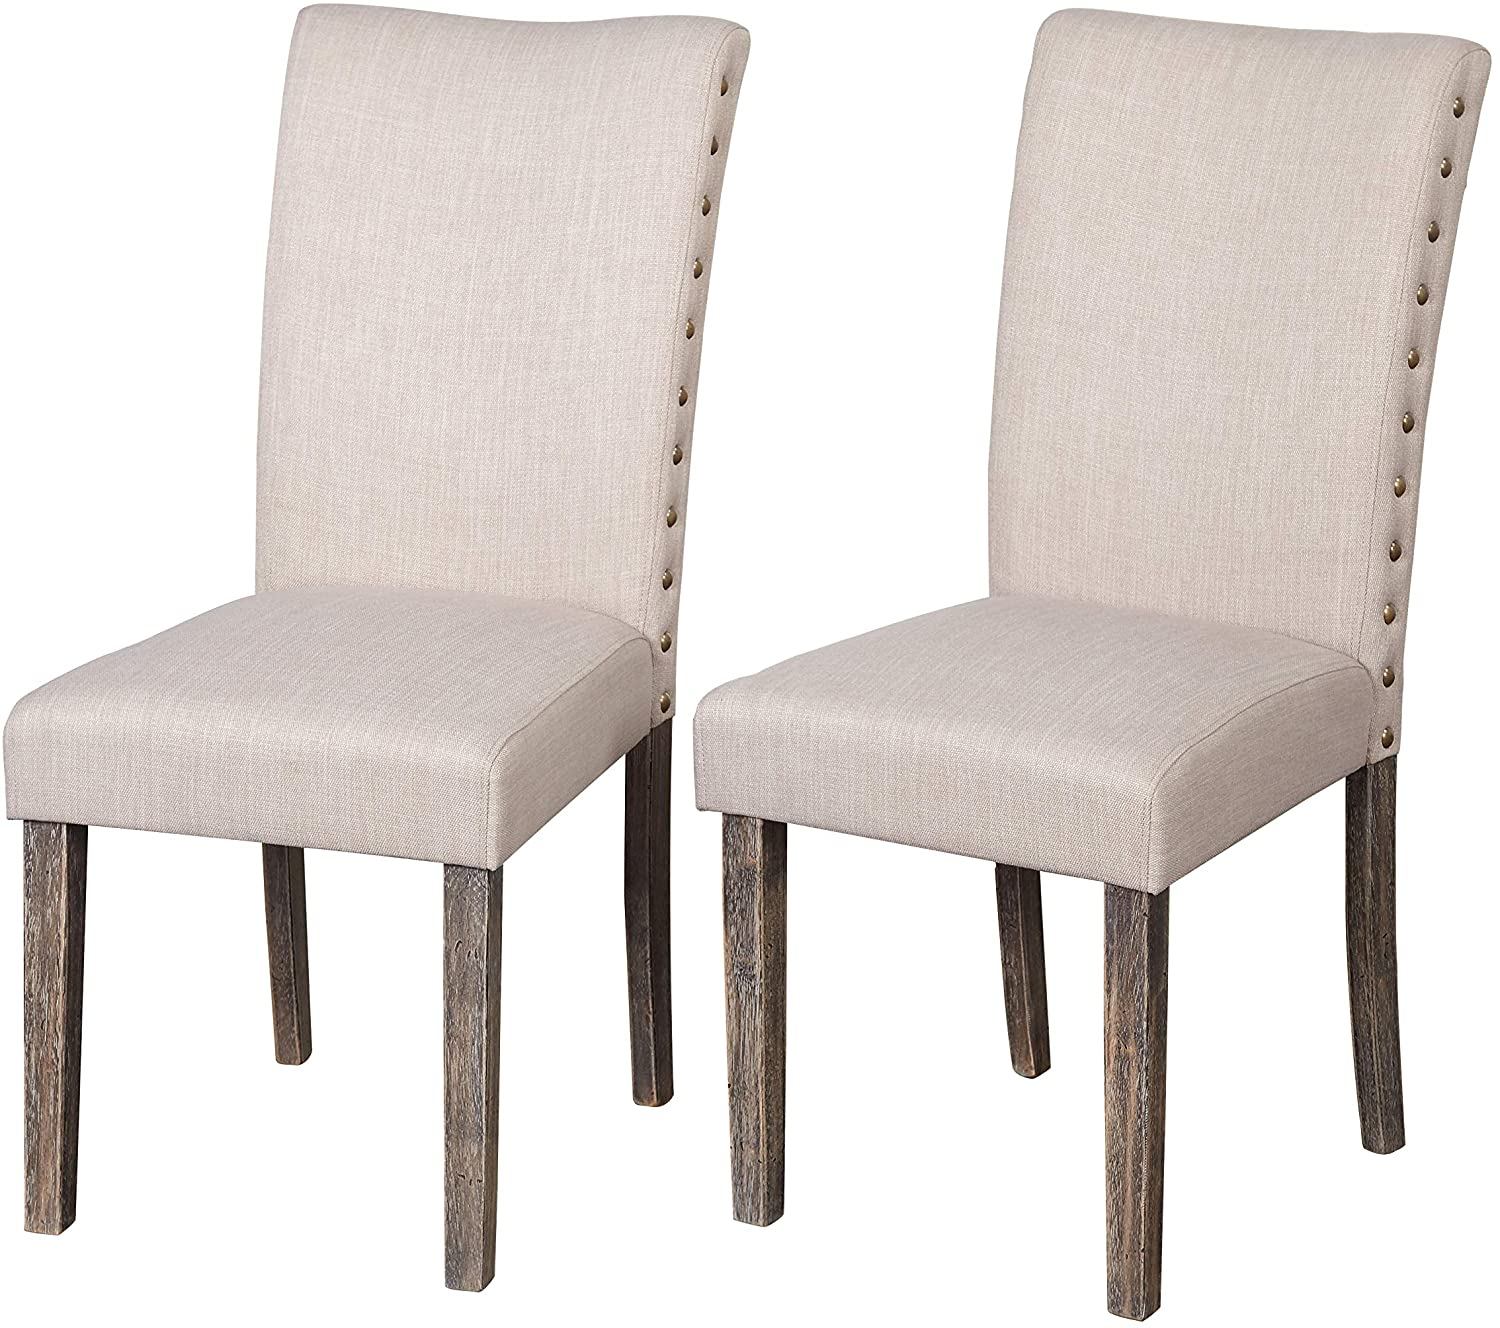 The Mezzanine Shoppe Burntwood Modern Fabric Upholstered Parson Dining Room Chair, 2 Pairs, Grey